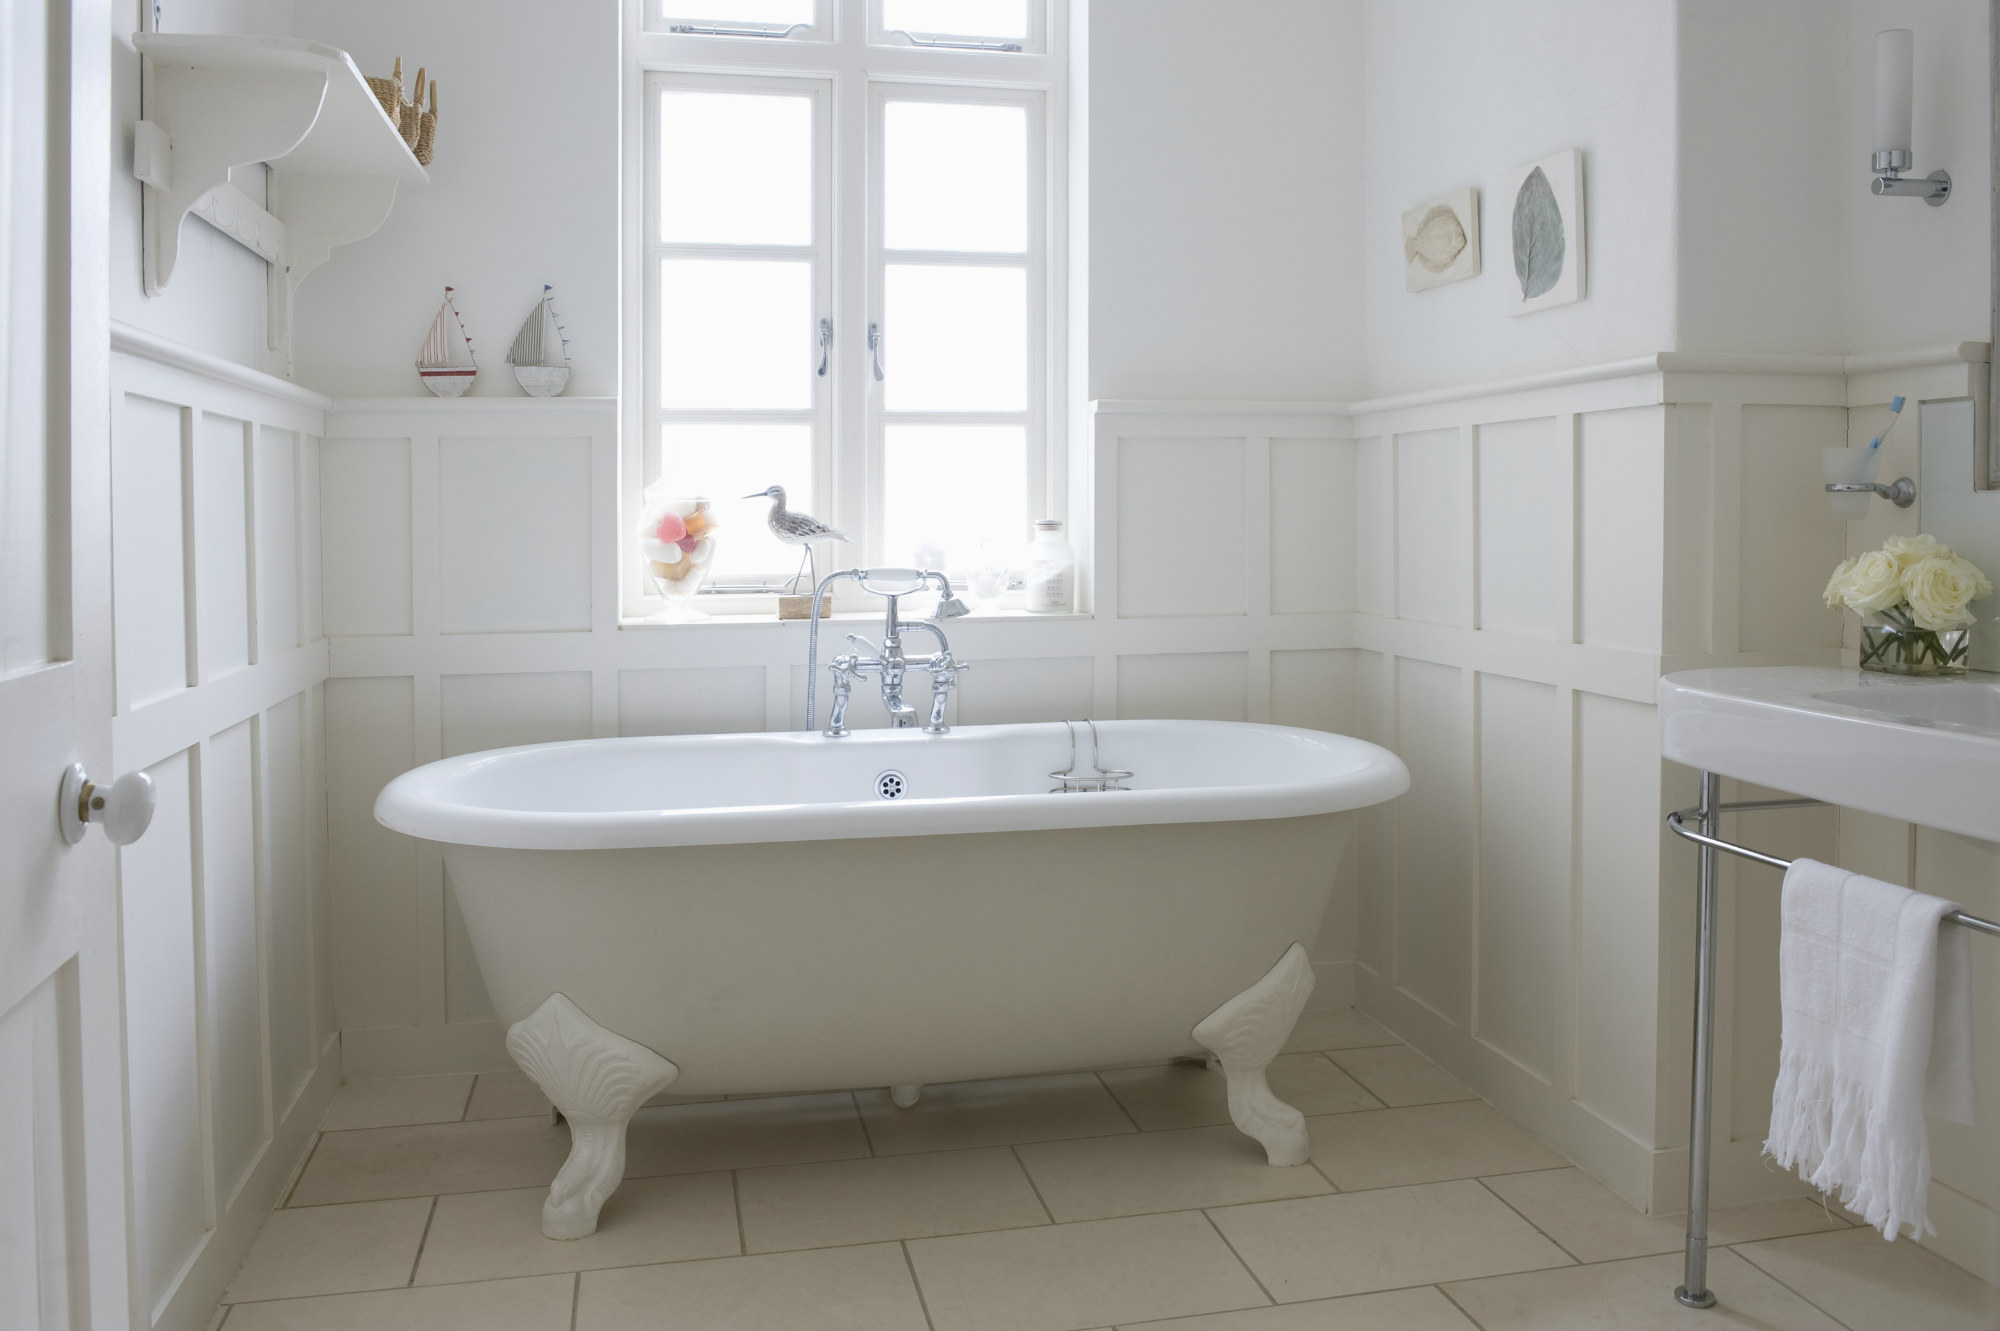 Victorian ere bathtub clipart clipart free How To Create A Victorian-Style Bathroom | Country ... clipart free